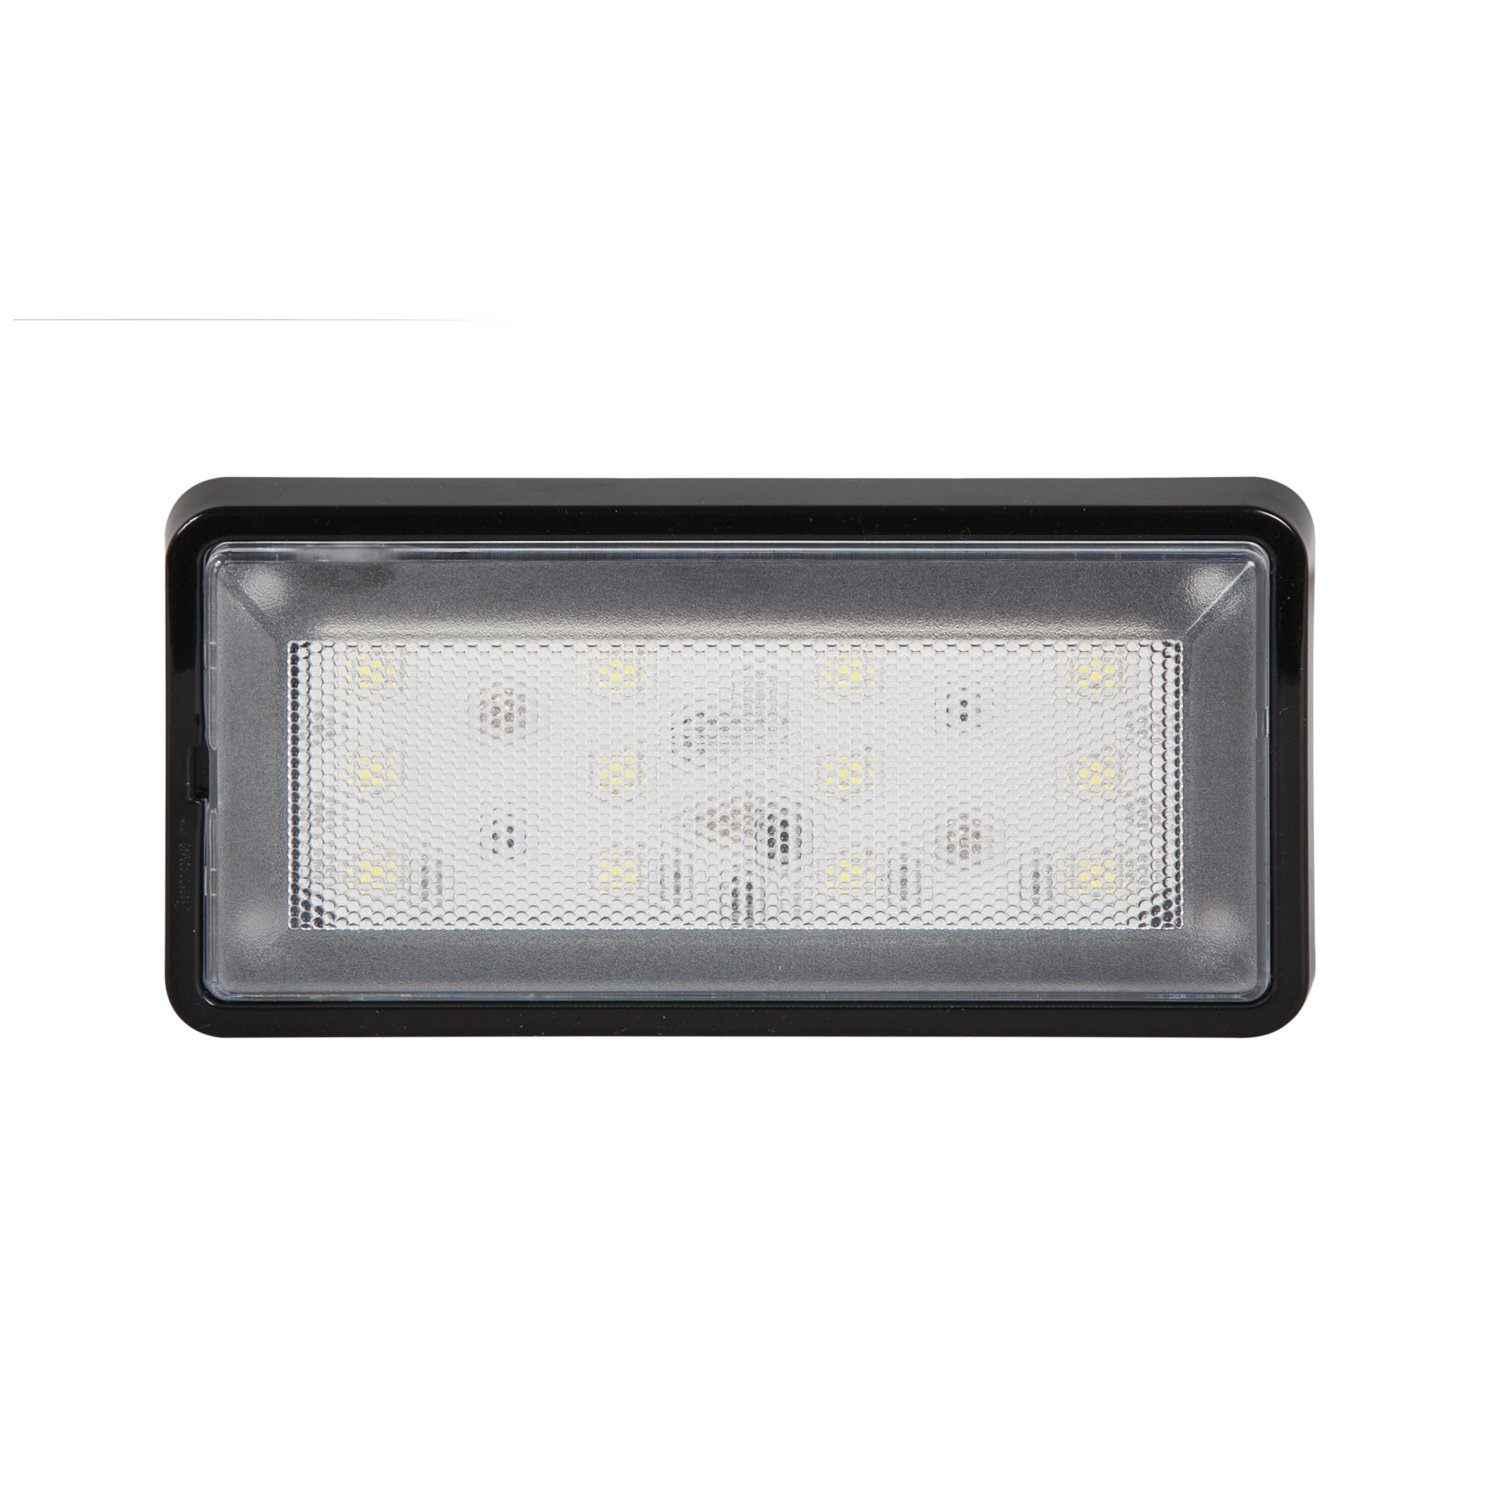 Maxxima M84407-B 3''x6'' Interior Compartment Light with 12 LEDs